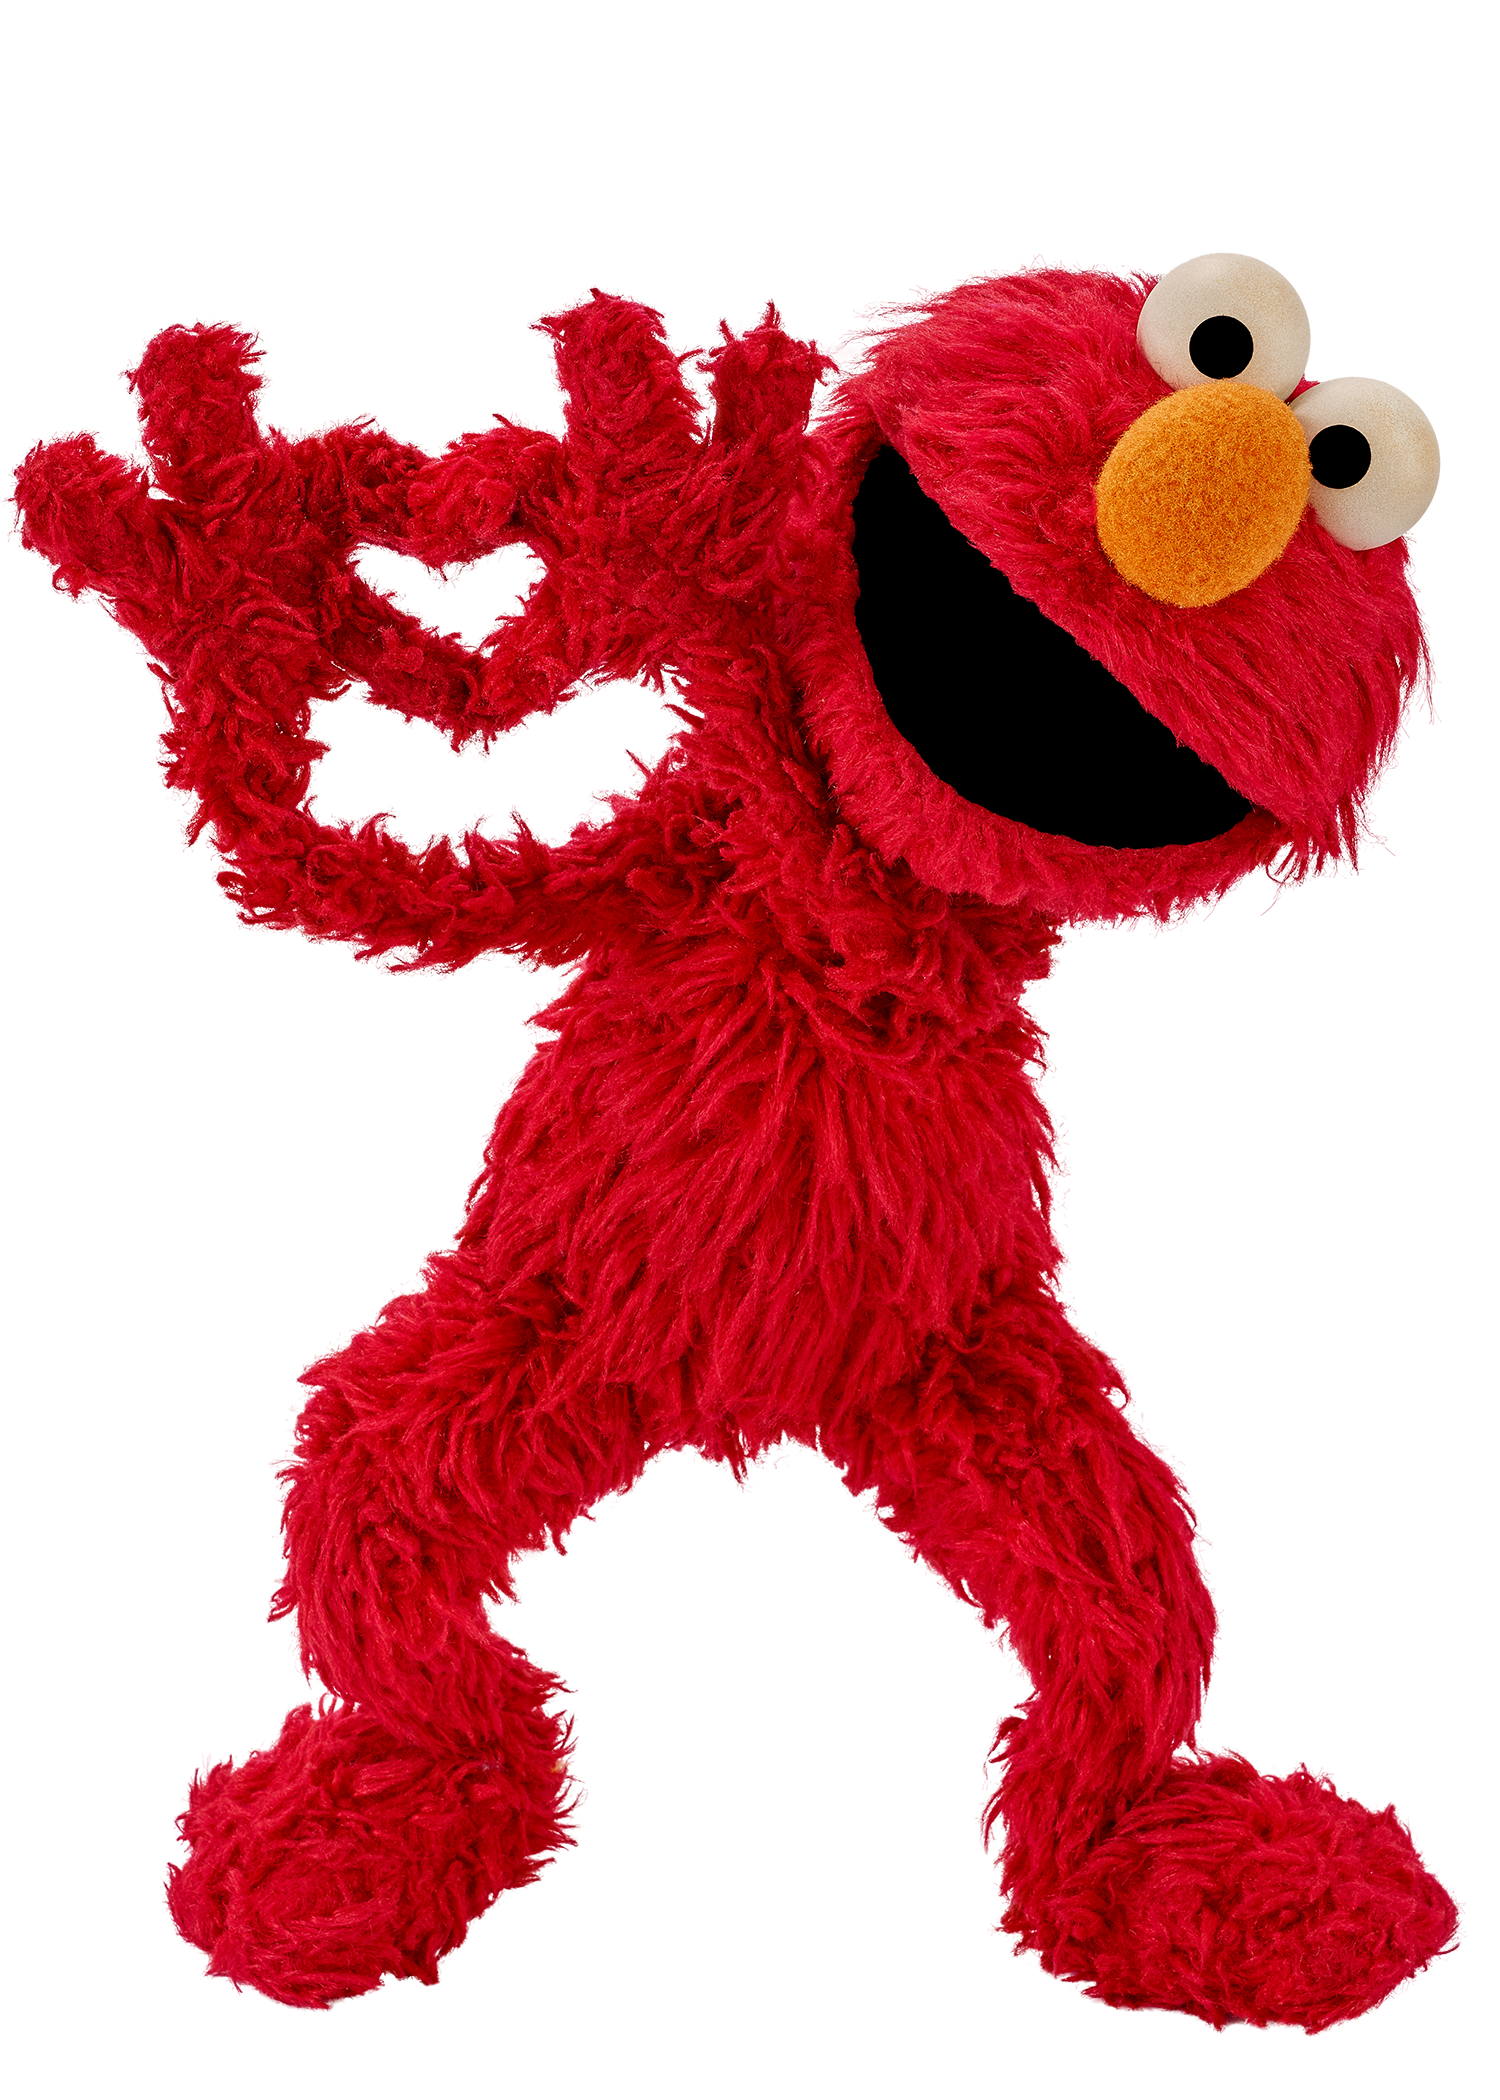 Elmo png. Sesame street announces spread